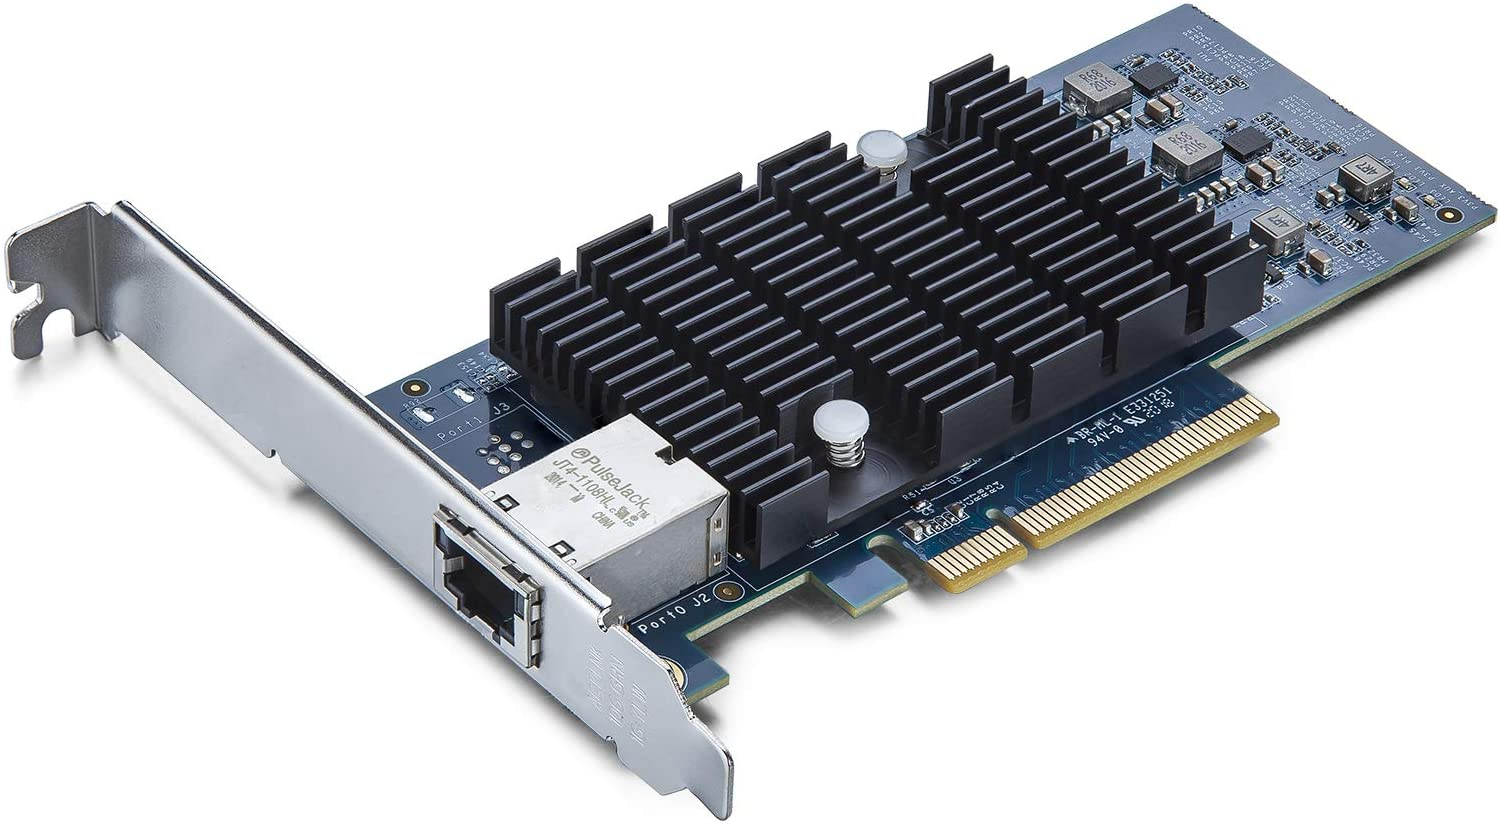 10Gb PCI-E NIC Network Card, PCI Express Ethernet LAN Adapter Support Windows Server/Windows/Linux/ESX,Compare to Intel X540-T1